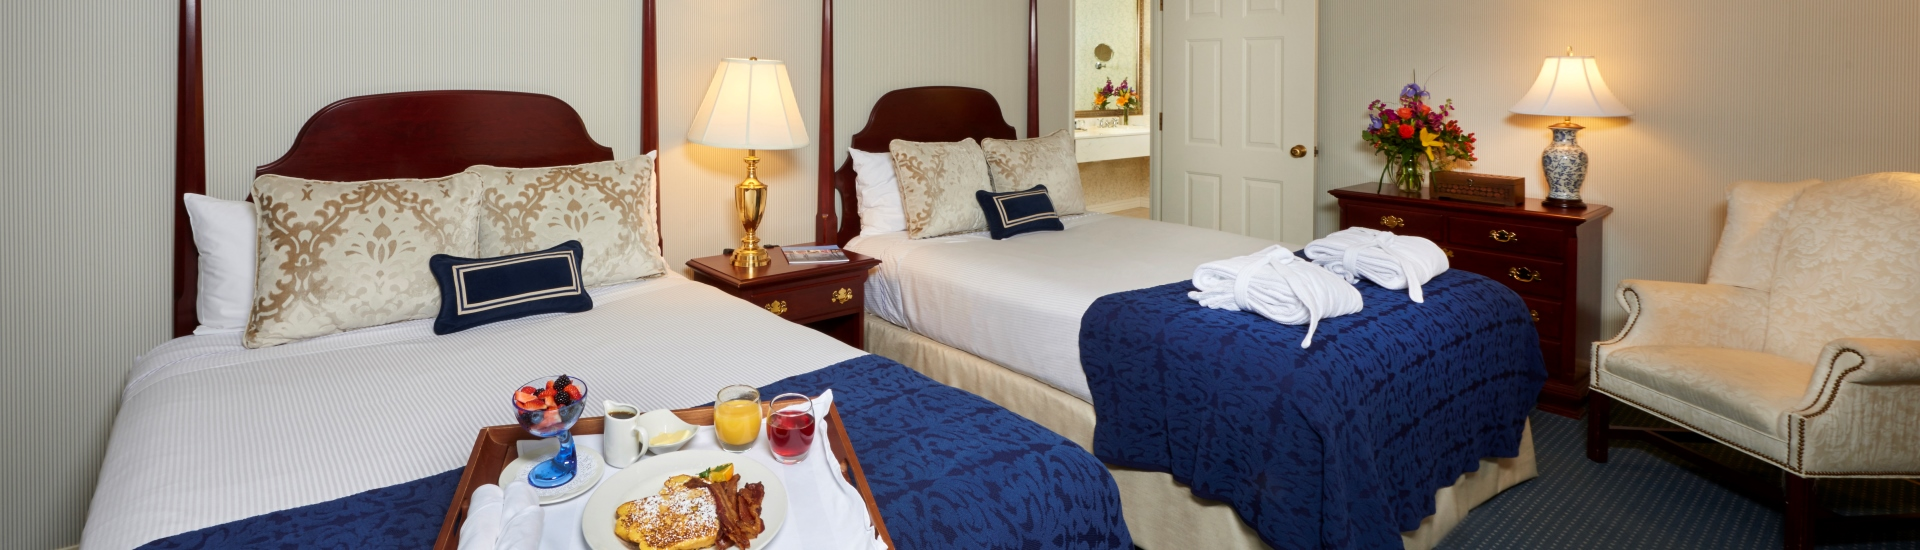 Queen Suite at The Nittany Lion Inn